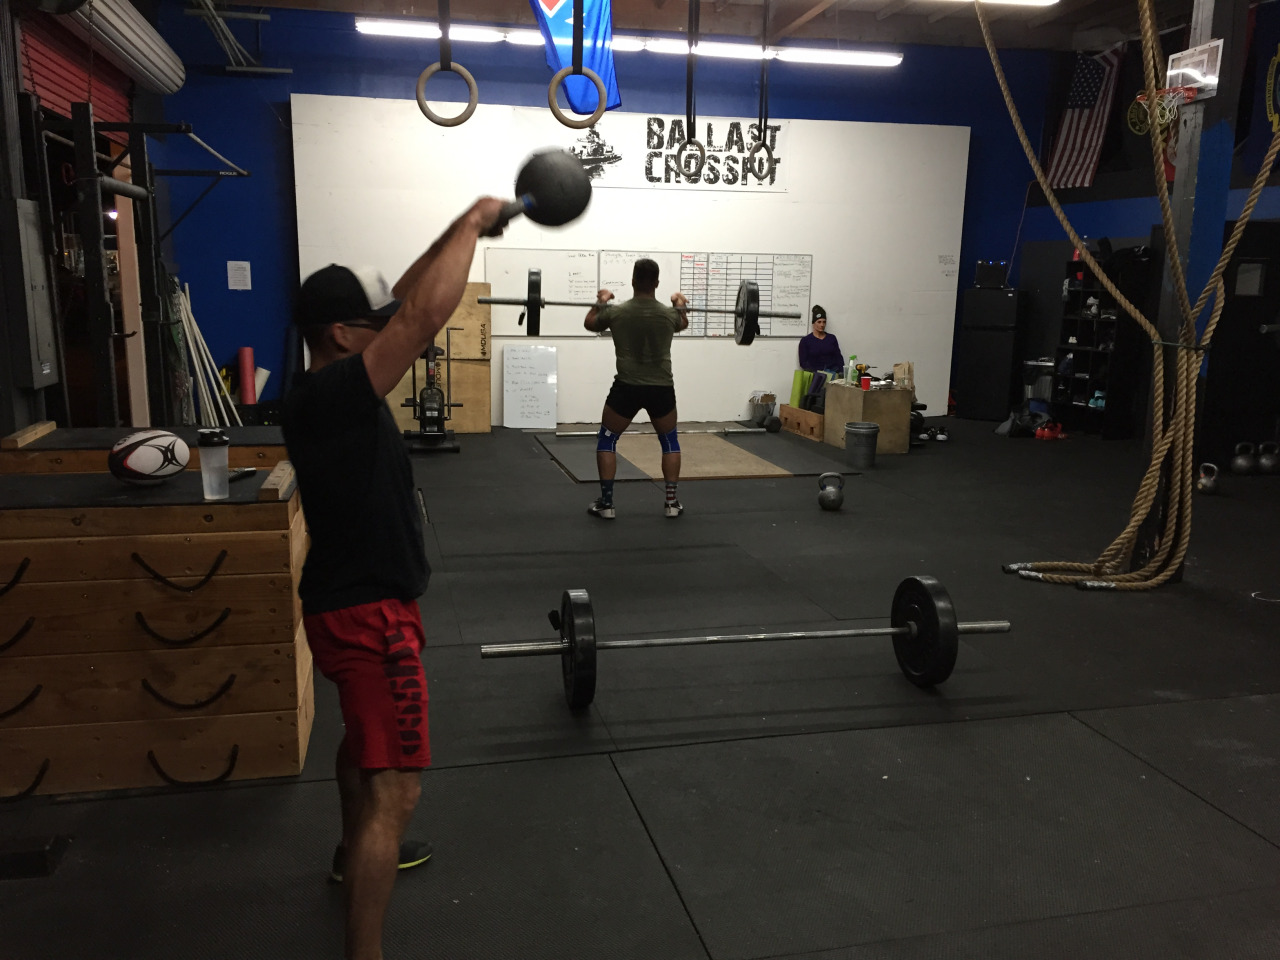 TUESDAY 29DEC15    Tuesday    1. group 800m run  2. free flow + snatch prep (snatch from pockets, thigh, knee)  3. 20' to find heavy single hang snatch (from knee)  3a. 2@80% of part 3  4. 3 rounds for time:  75 double under  21 KBS 53/35  21 burpee       Weightlifting    1. coaches warm up  2. muscle clean + clean from pockets (10')  3. work to heavy AK clean + Lo hang clean   4. deficit deadlift 5-5-5-5